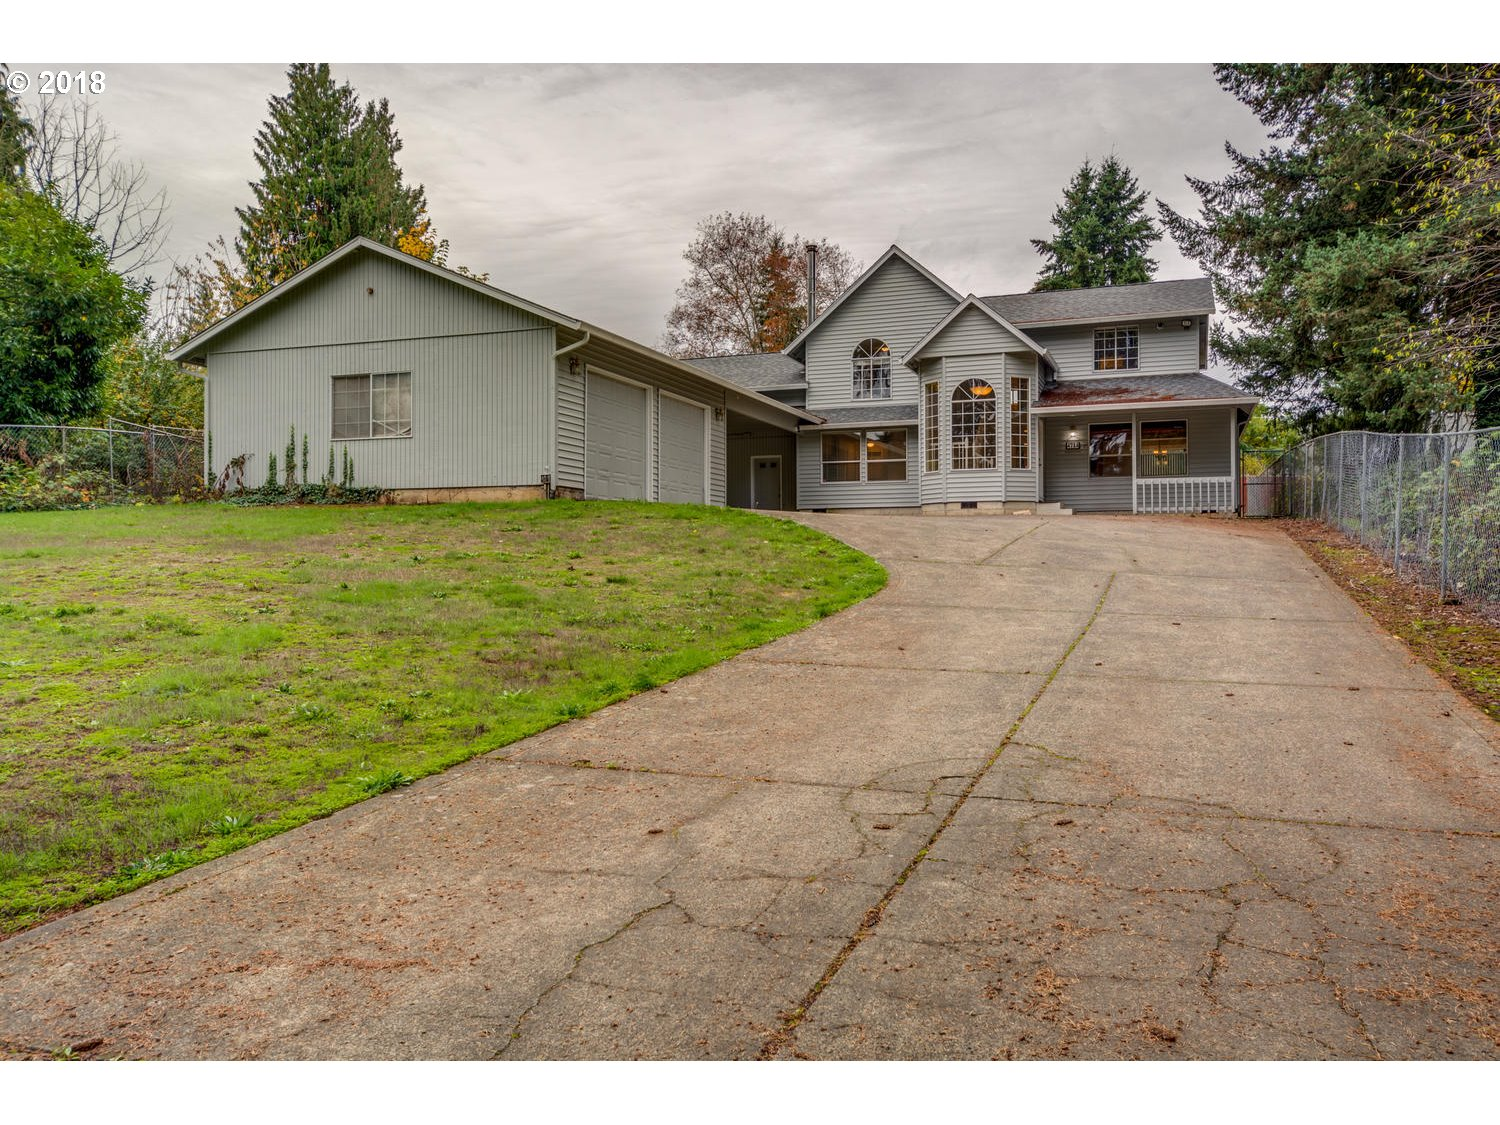 4714 NW DIVISION AVE Vancouver, WA 98663 - MLS #: 18519896